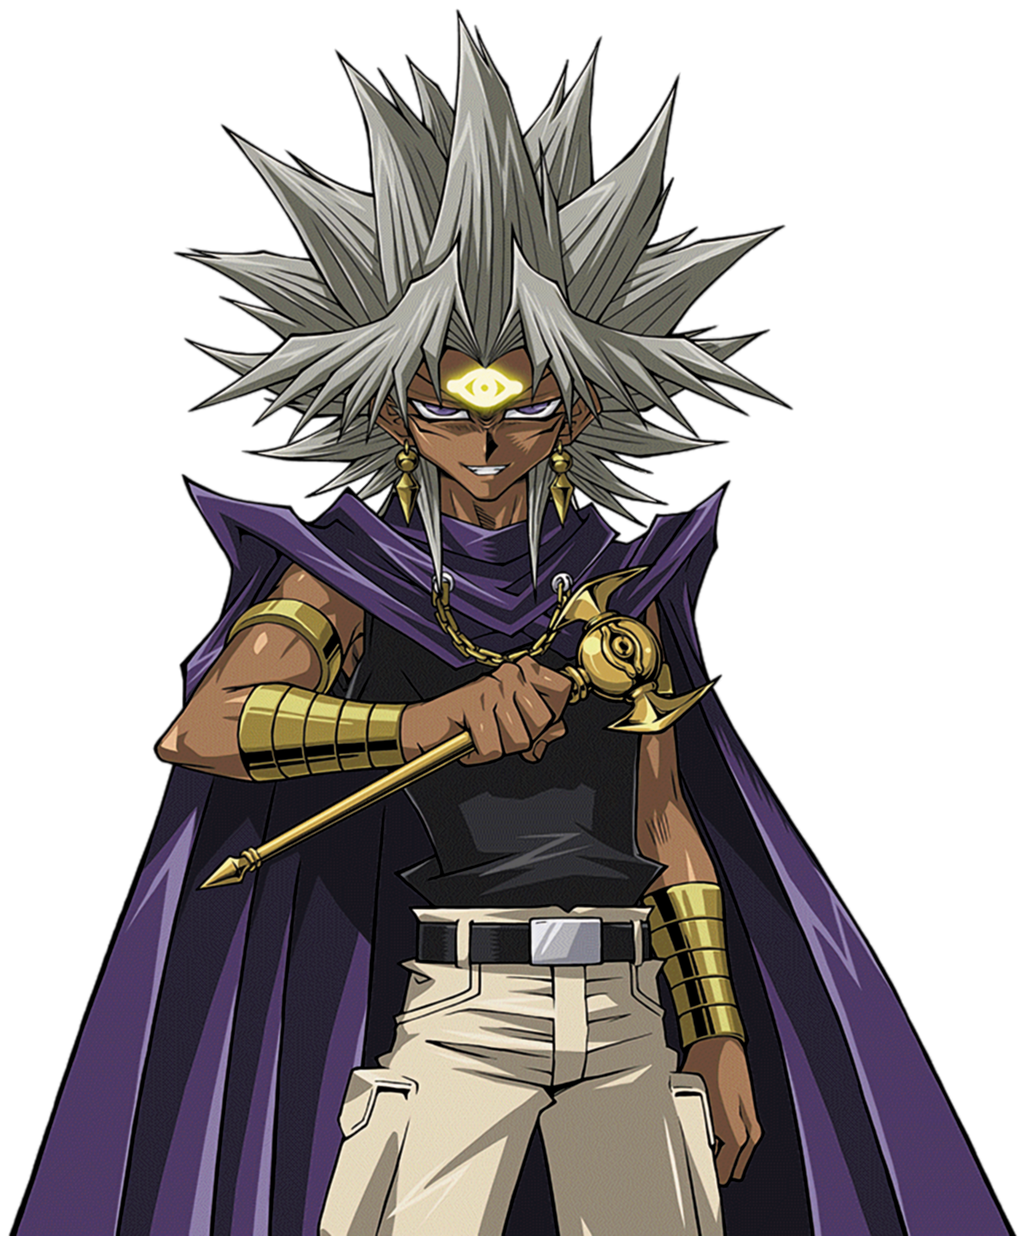 Yami Marik [render] By AlanMac95 On DeviantArt